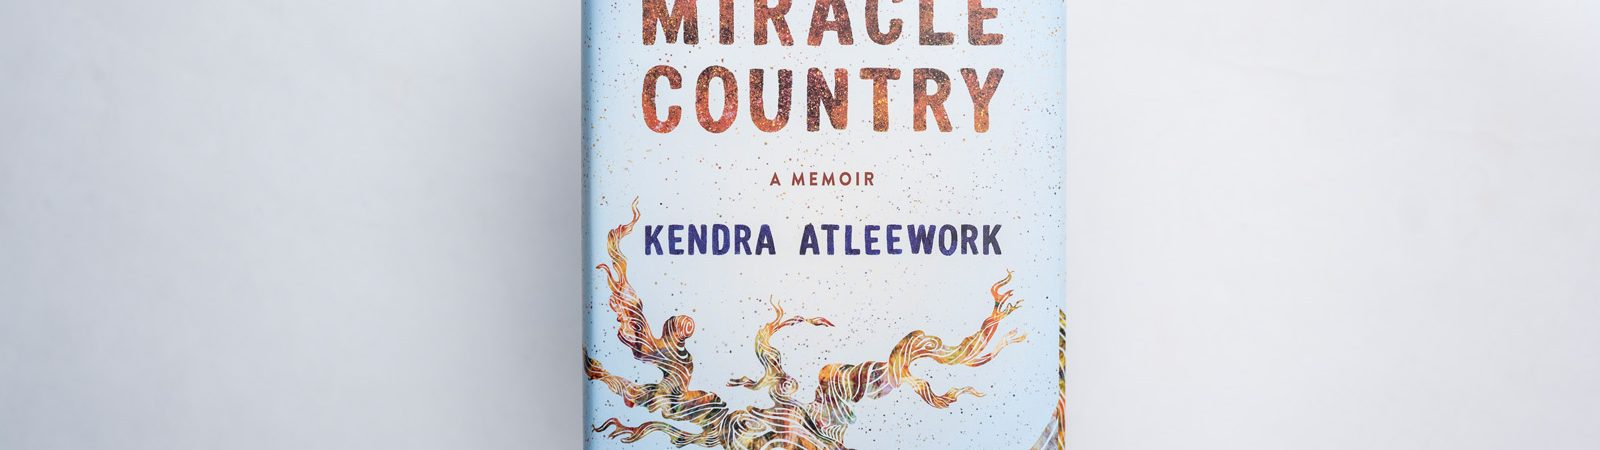 Cover of book, Miracle Country